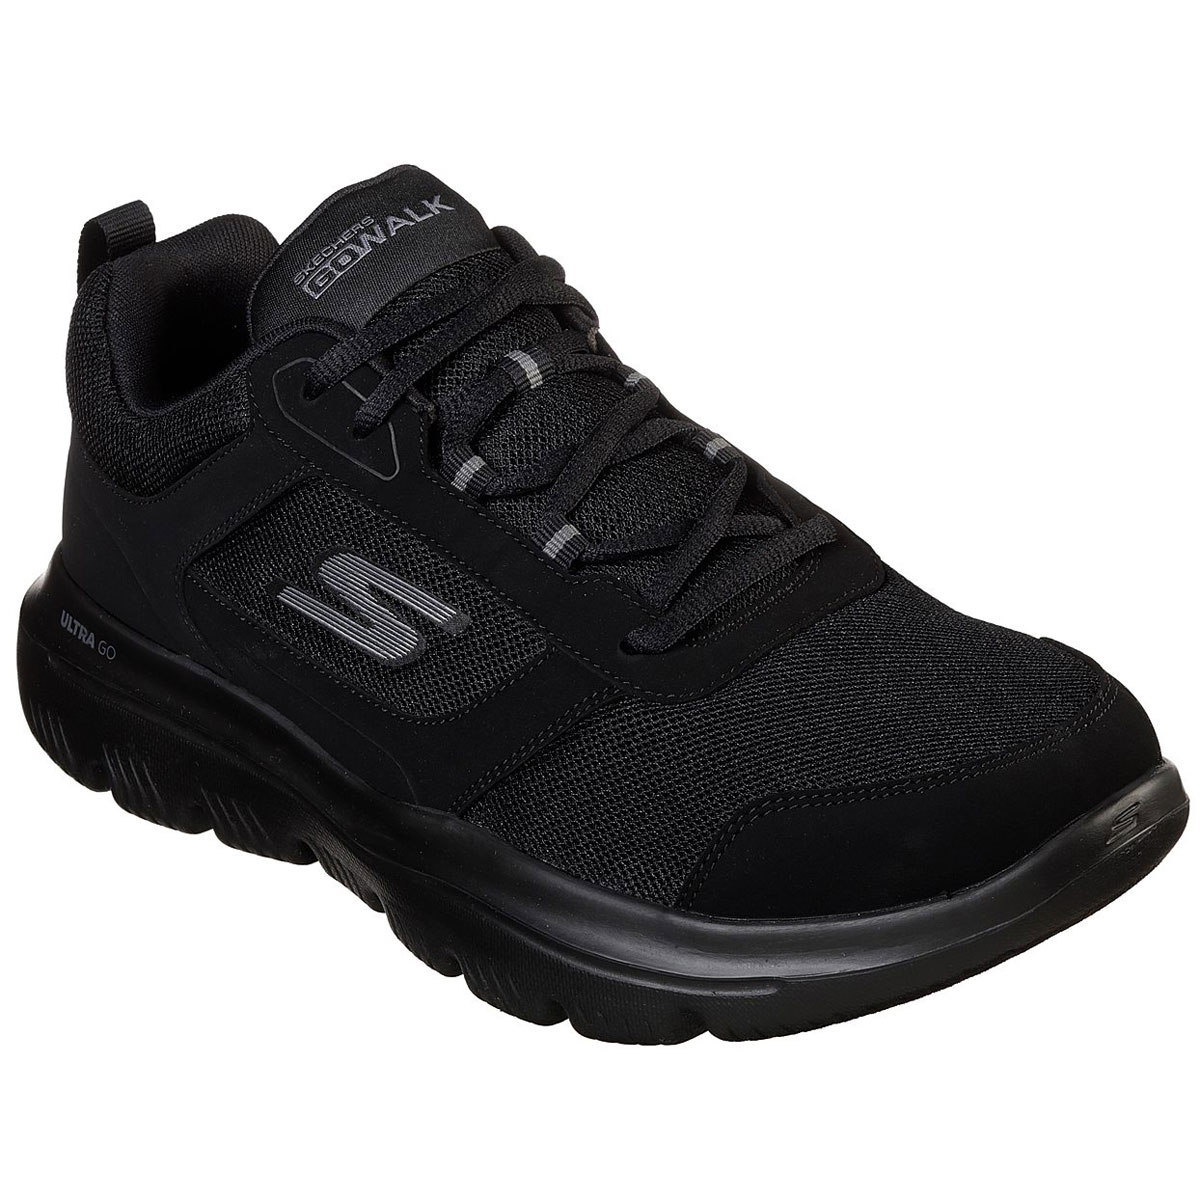 Skechers Men's Gowalk Evolution Ultra Enhance Walking Shoes - Black, 11